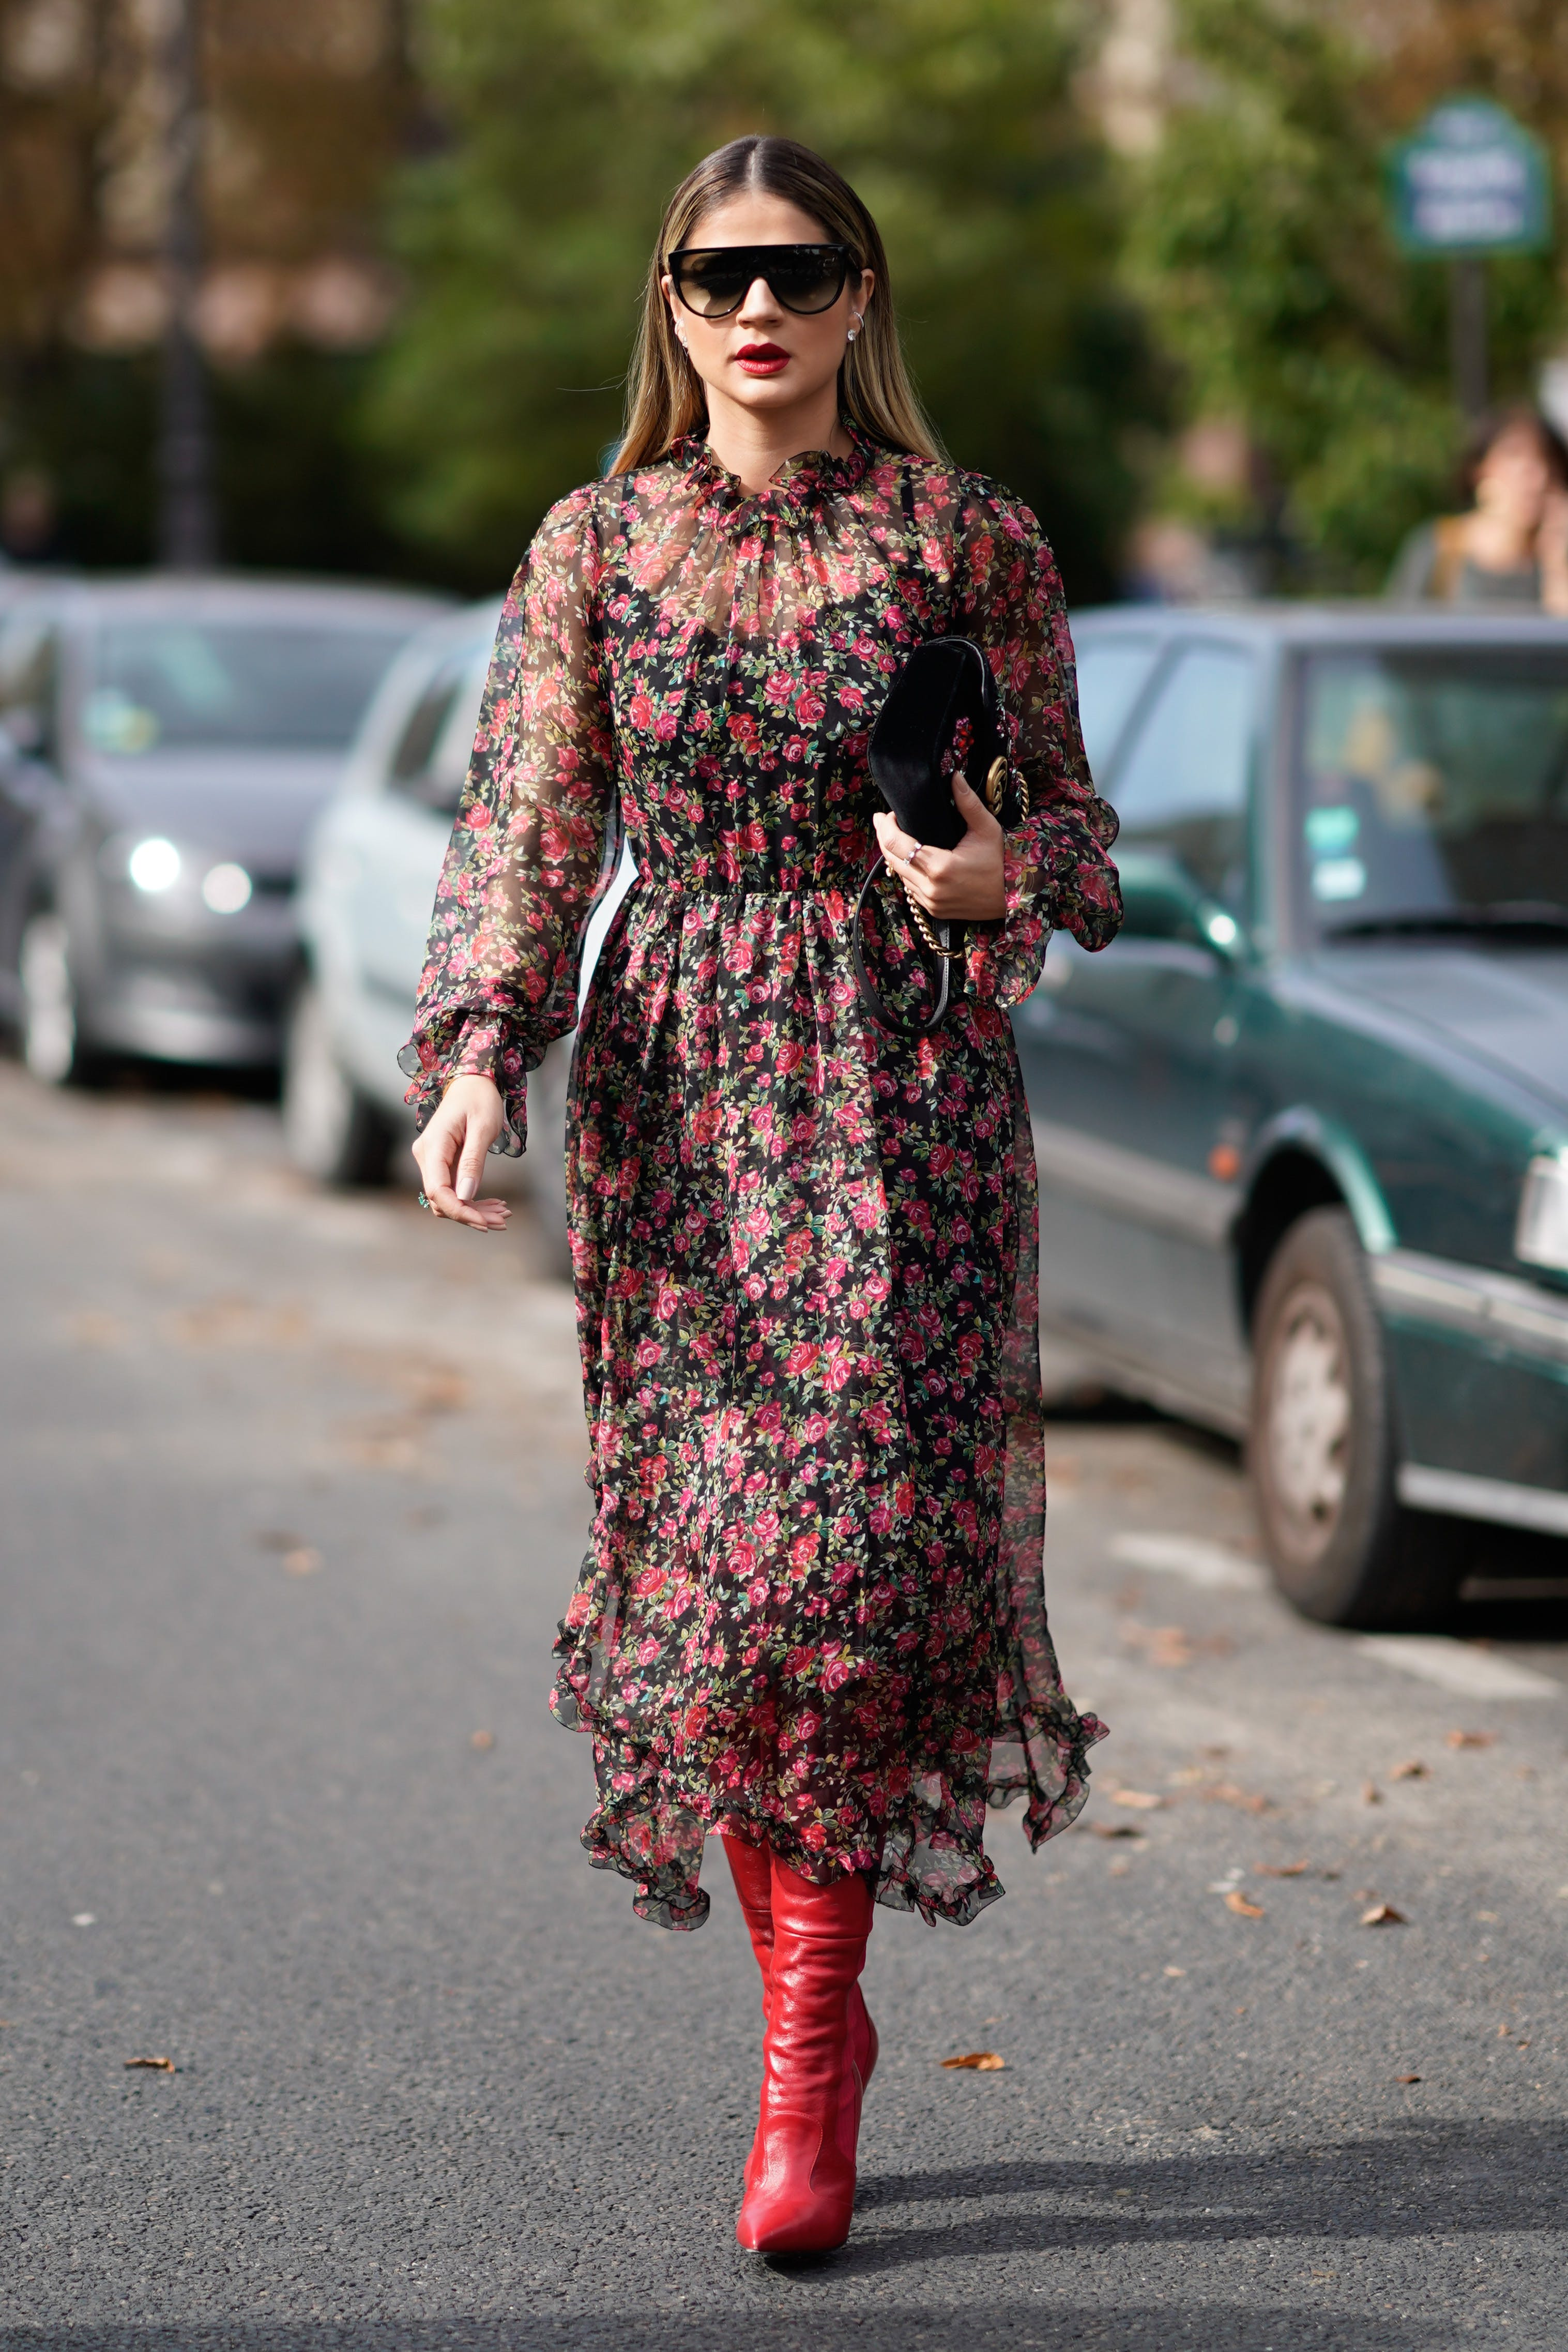 paris street style dress and boots